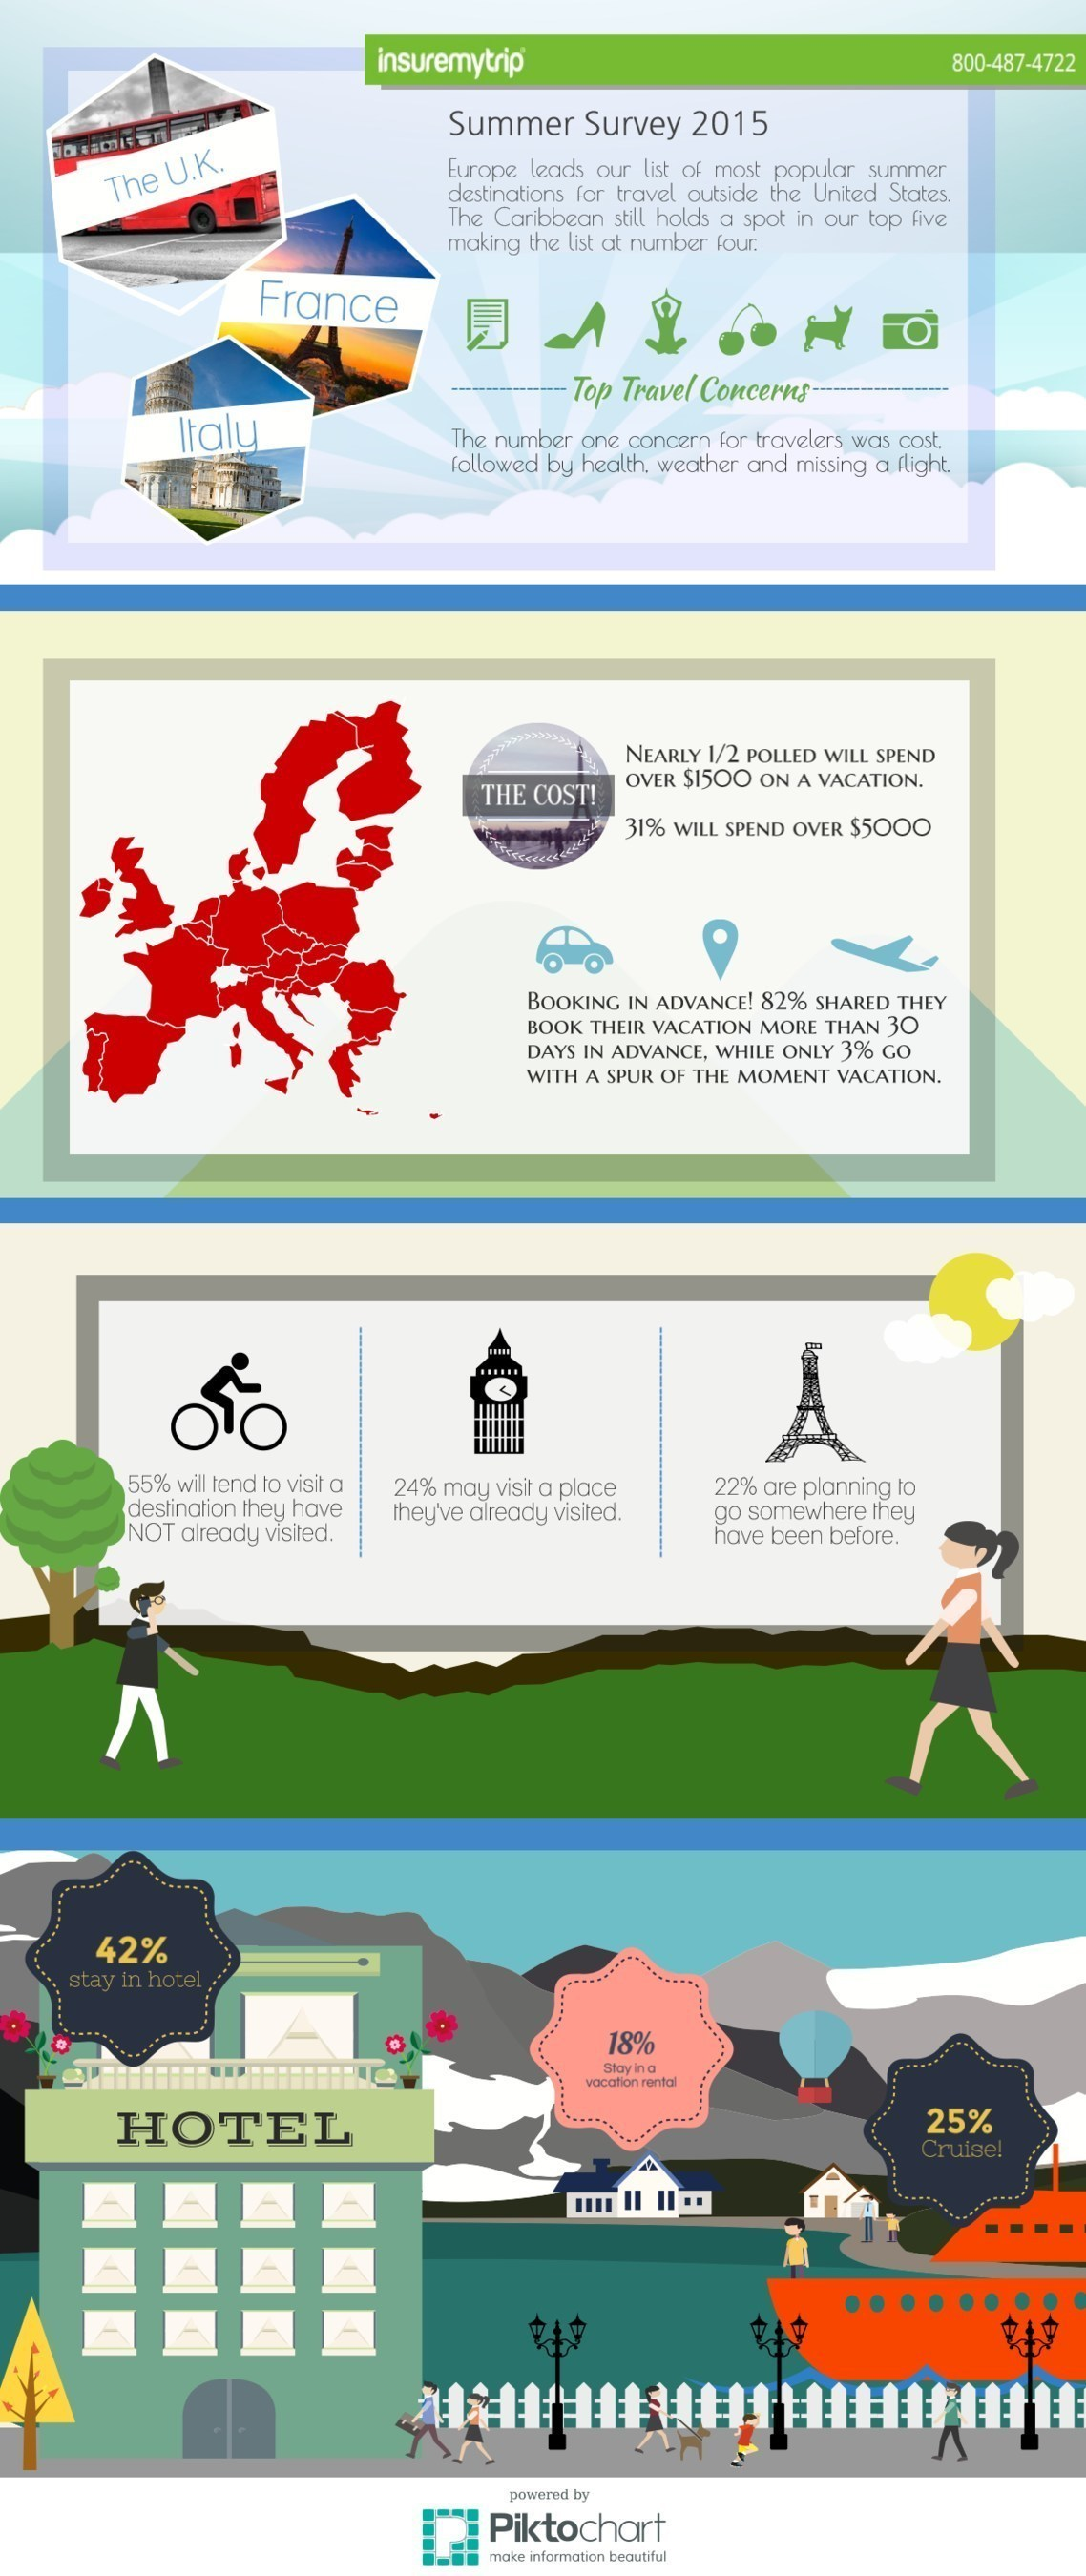 InsureMyTrip survey reveals most planning a trip this summer.